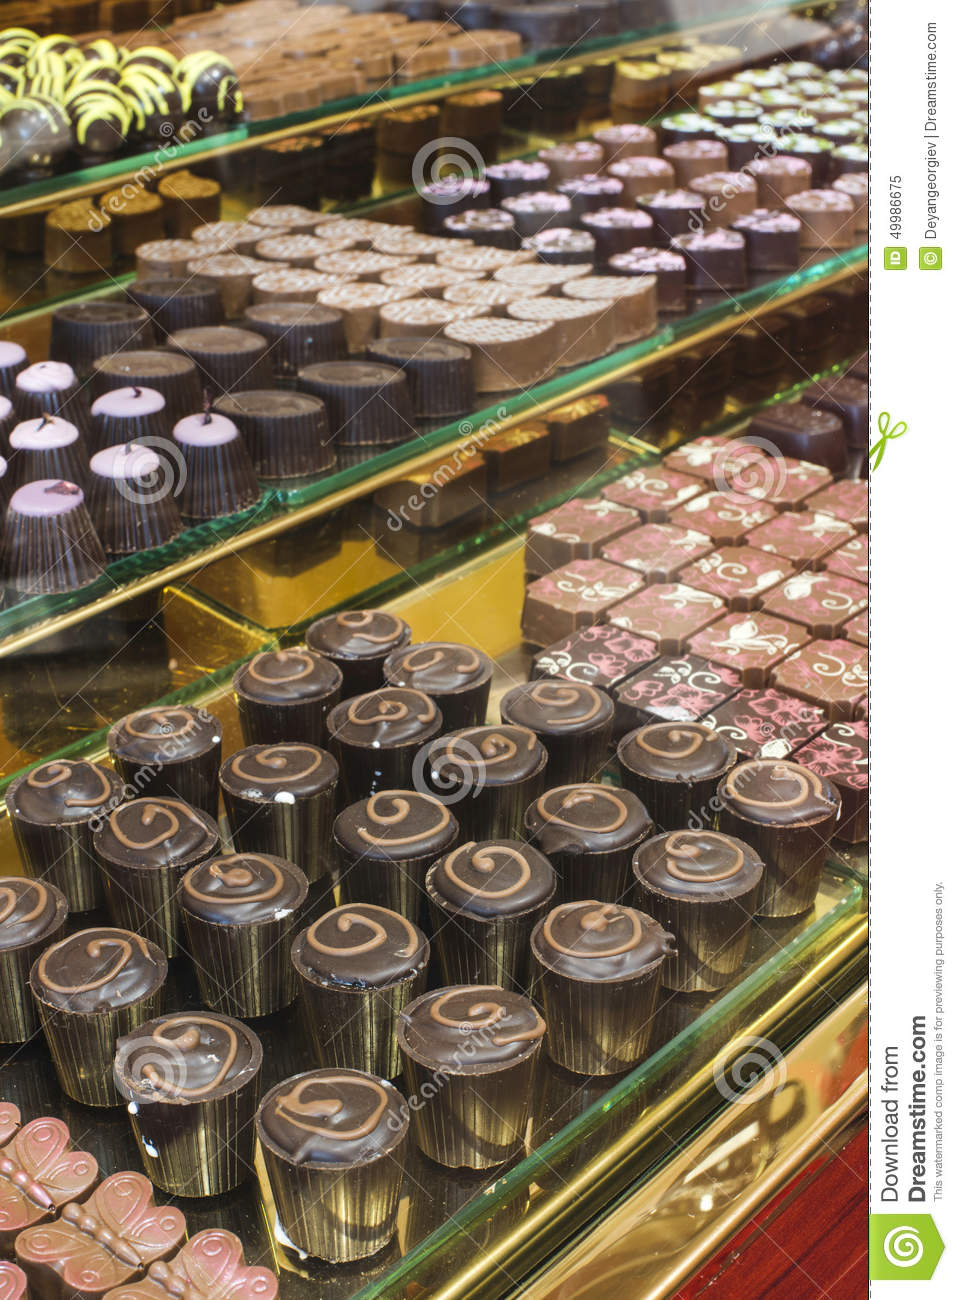 Chocolate Candy In A Store Window Stock Photo - Image: 49986675